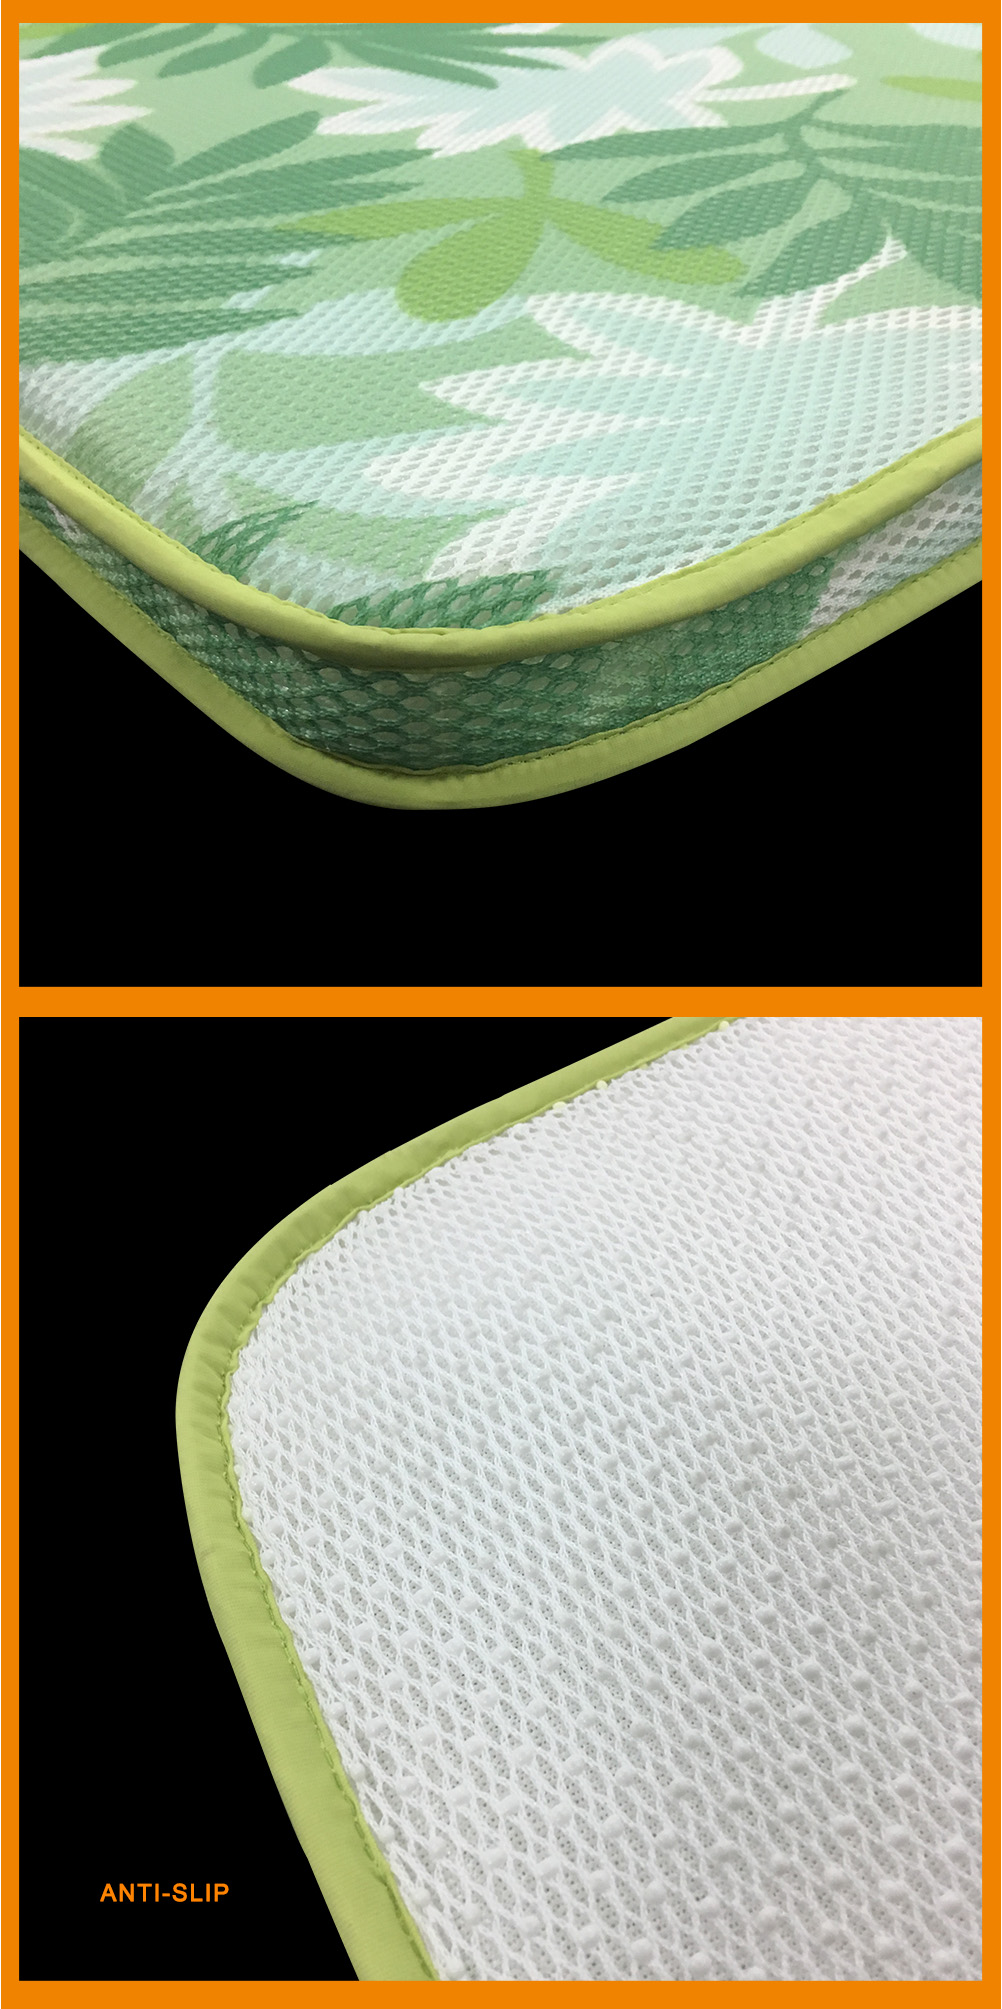 anti-slip green 3D mesh fabric cooling chair pad